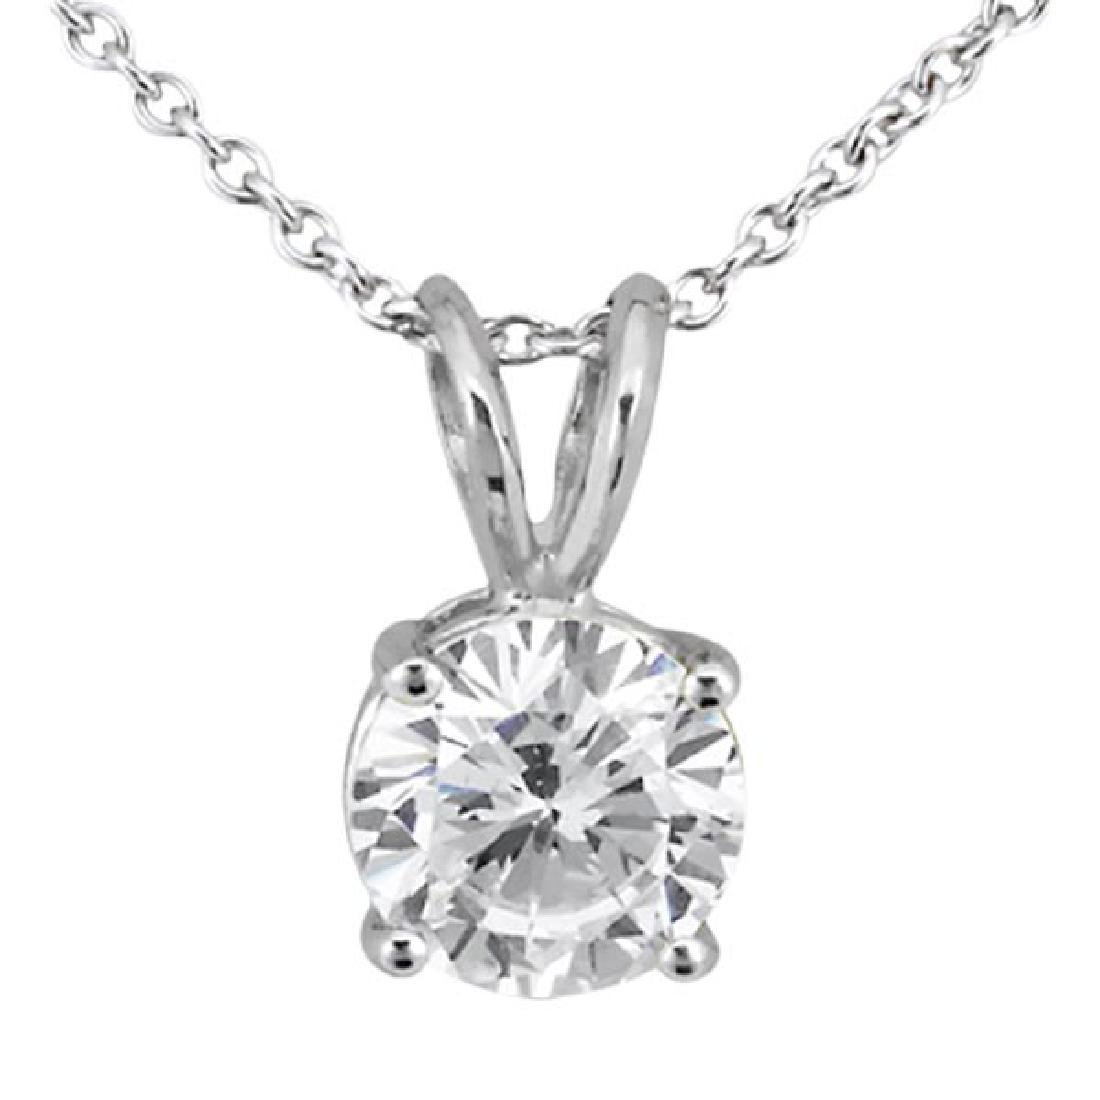 1.00ct. Round Diamond Solitaire Pendant in 18k White Go